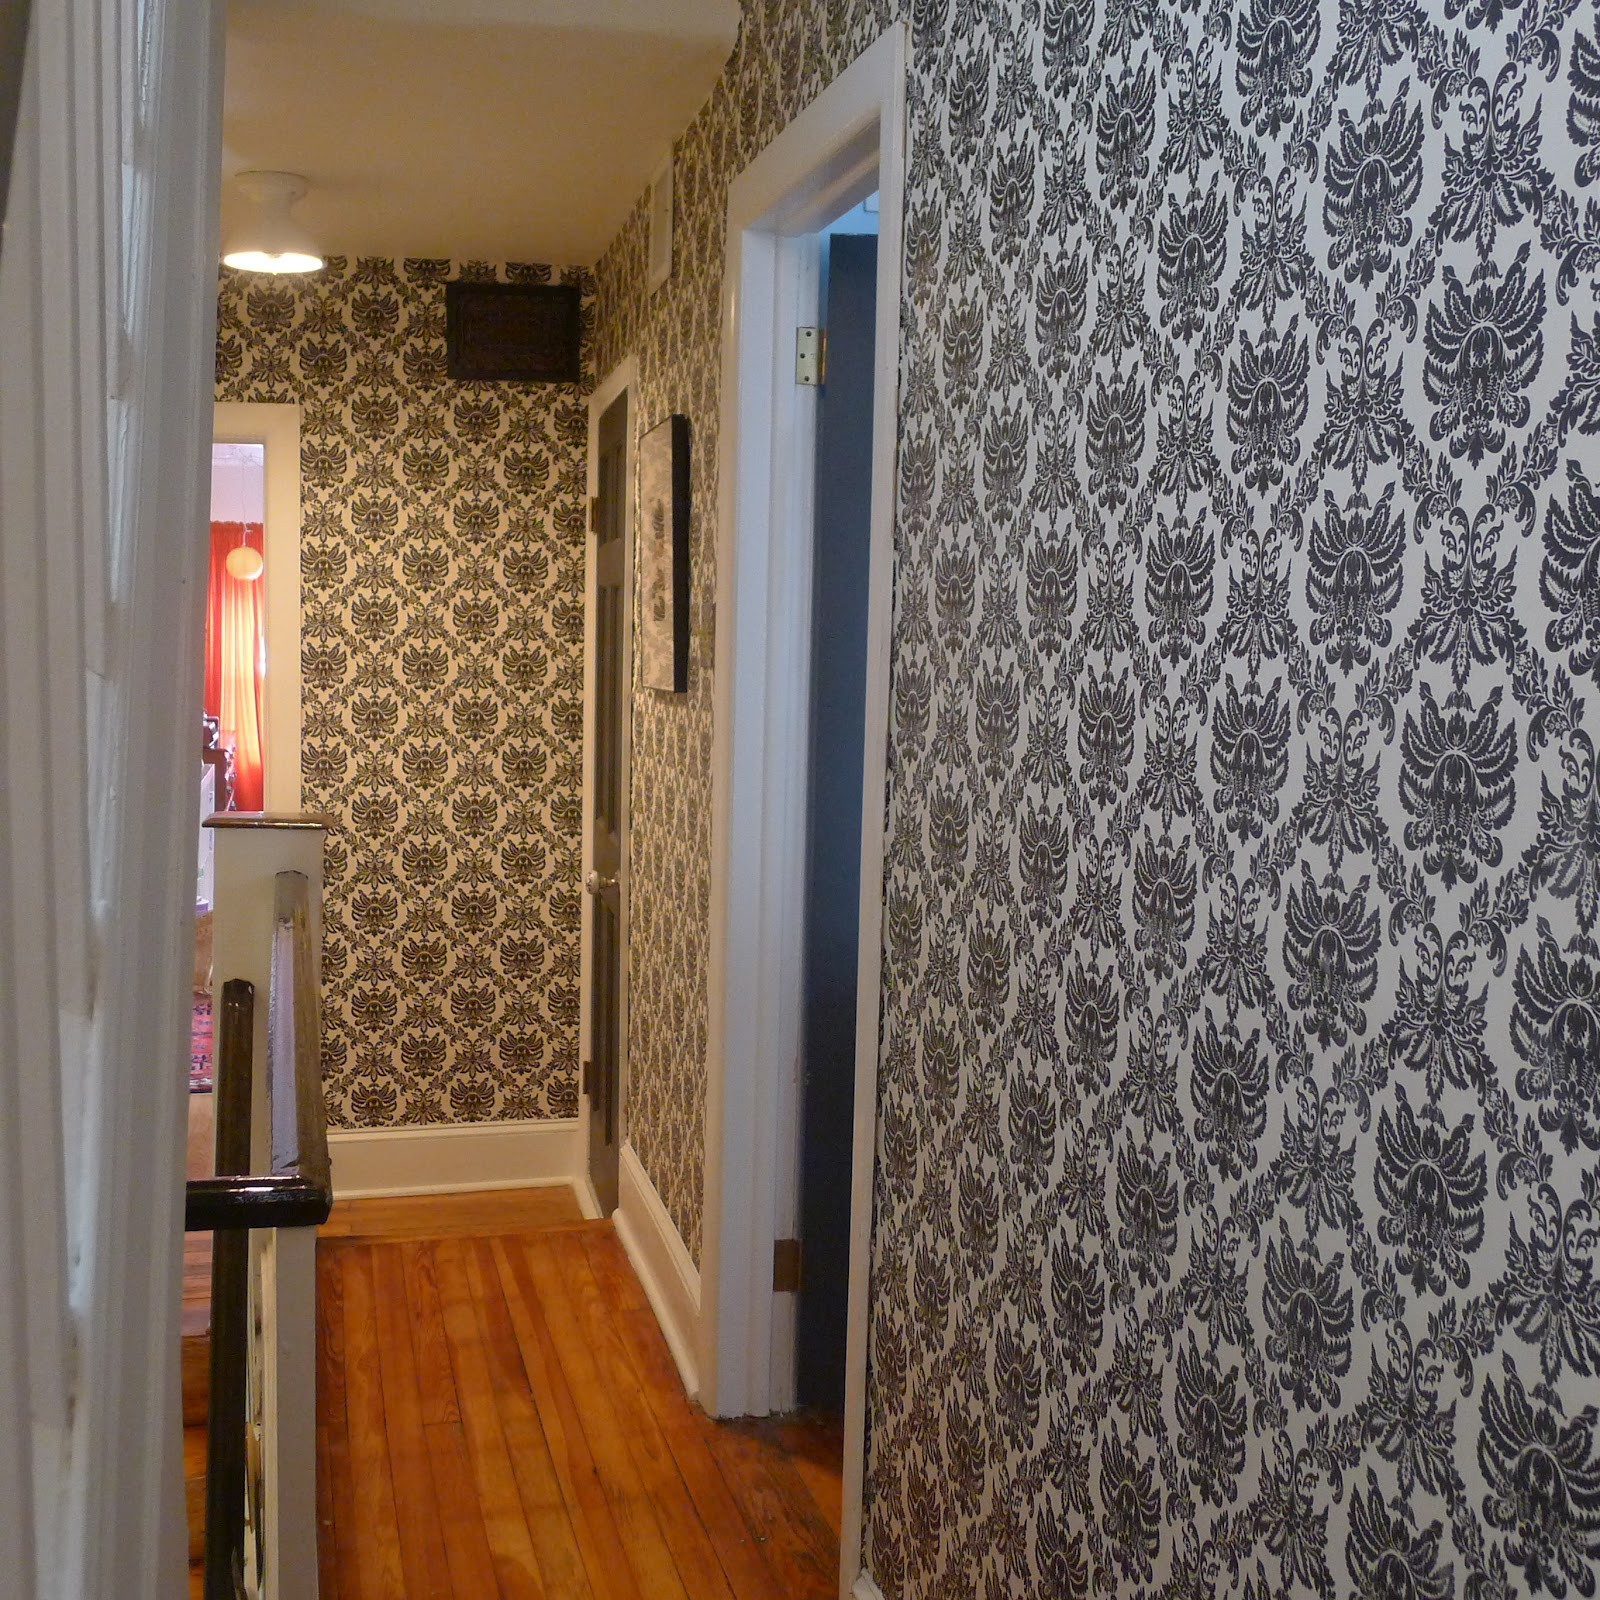 South Philly Renovation: Wallpaper In The Hallway